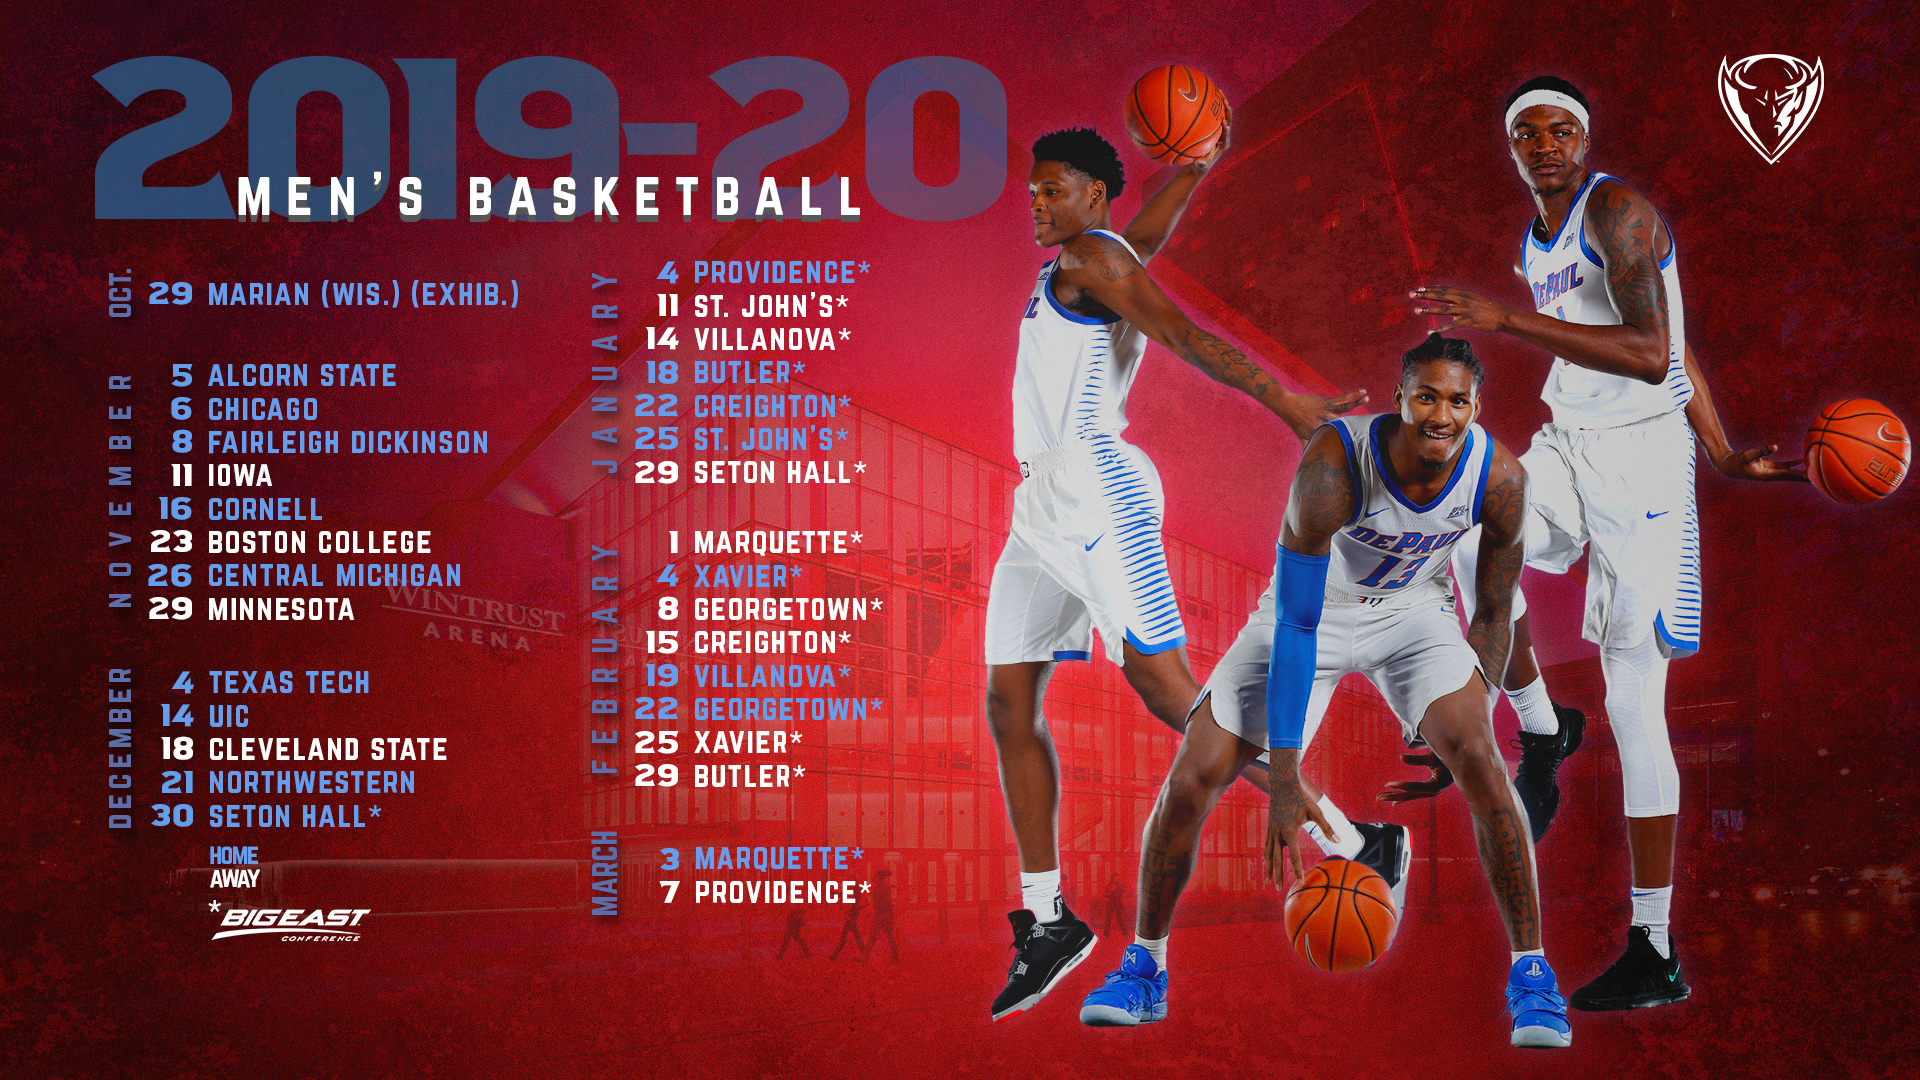 Save The Dates 2019 20 Men S Basketball Schedule Announced